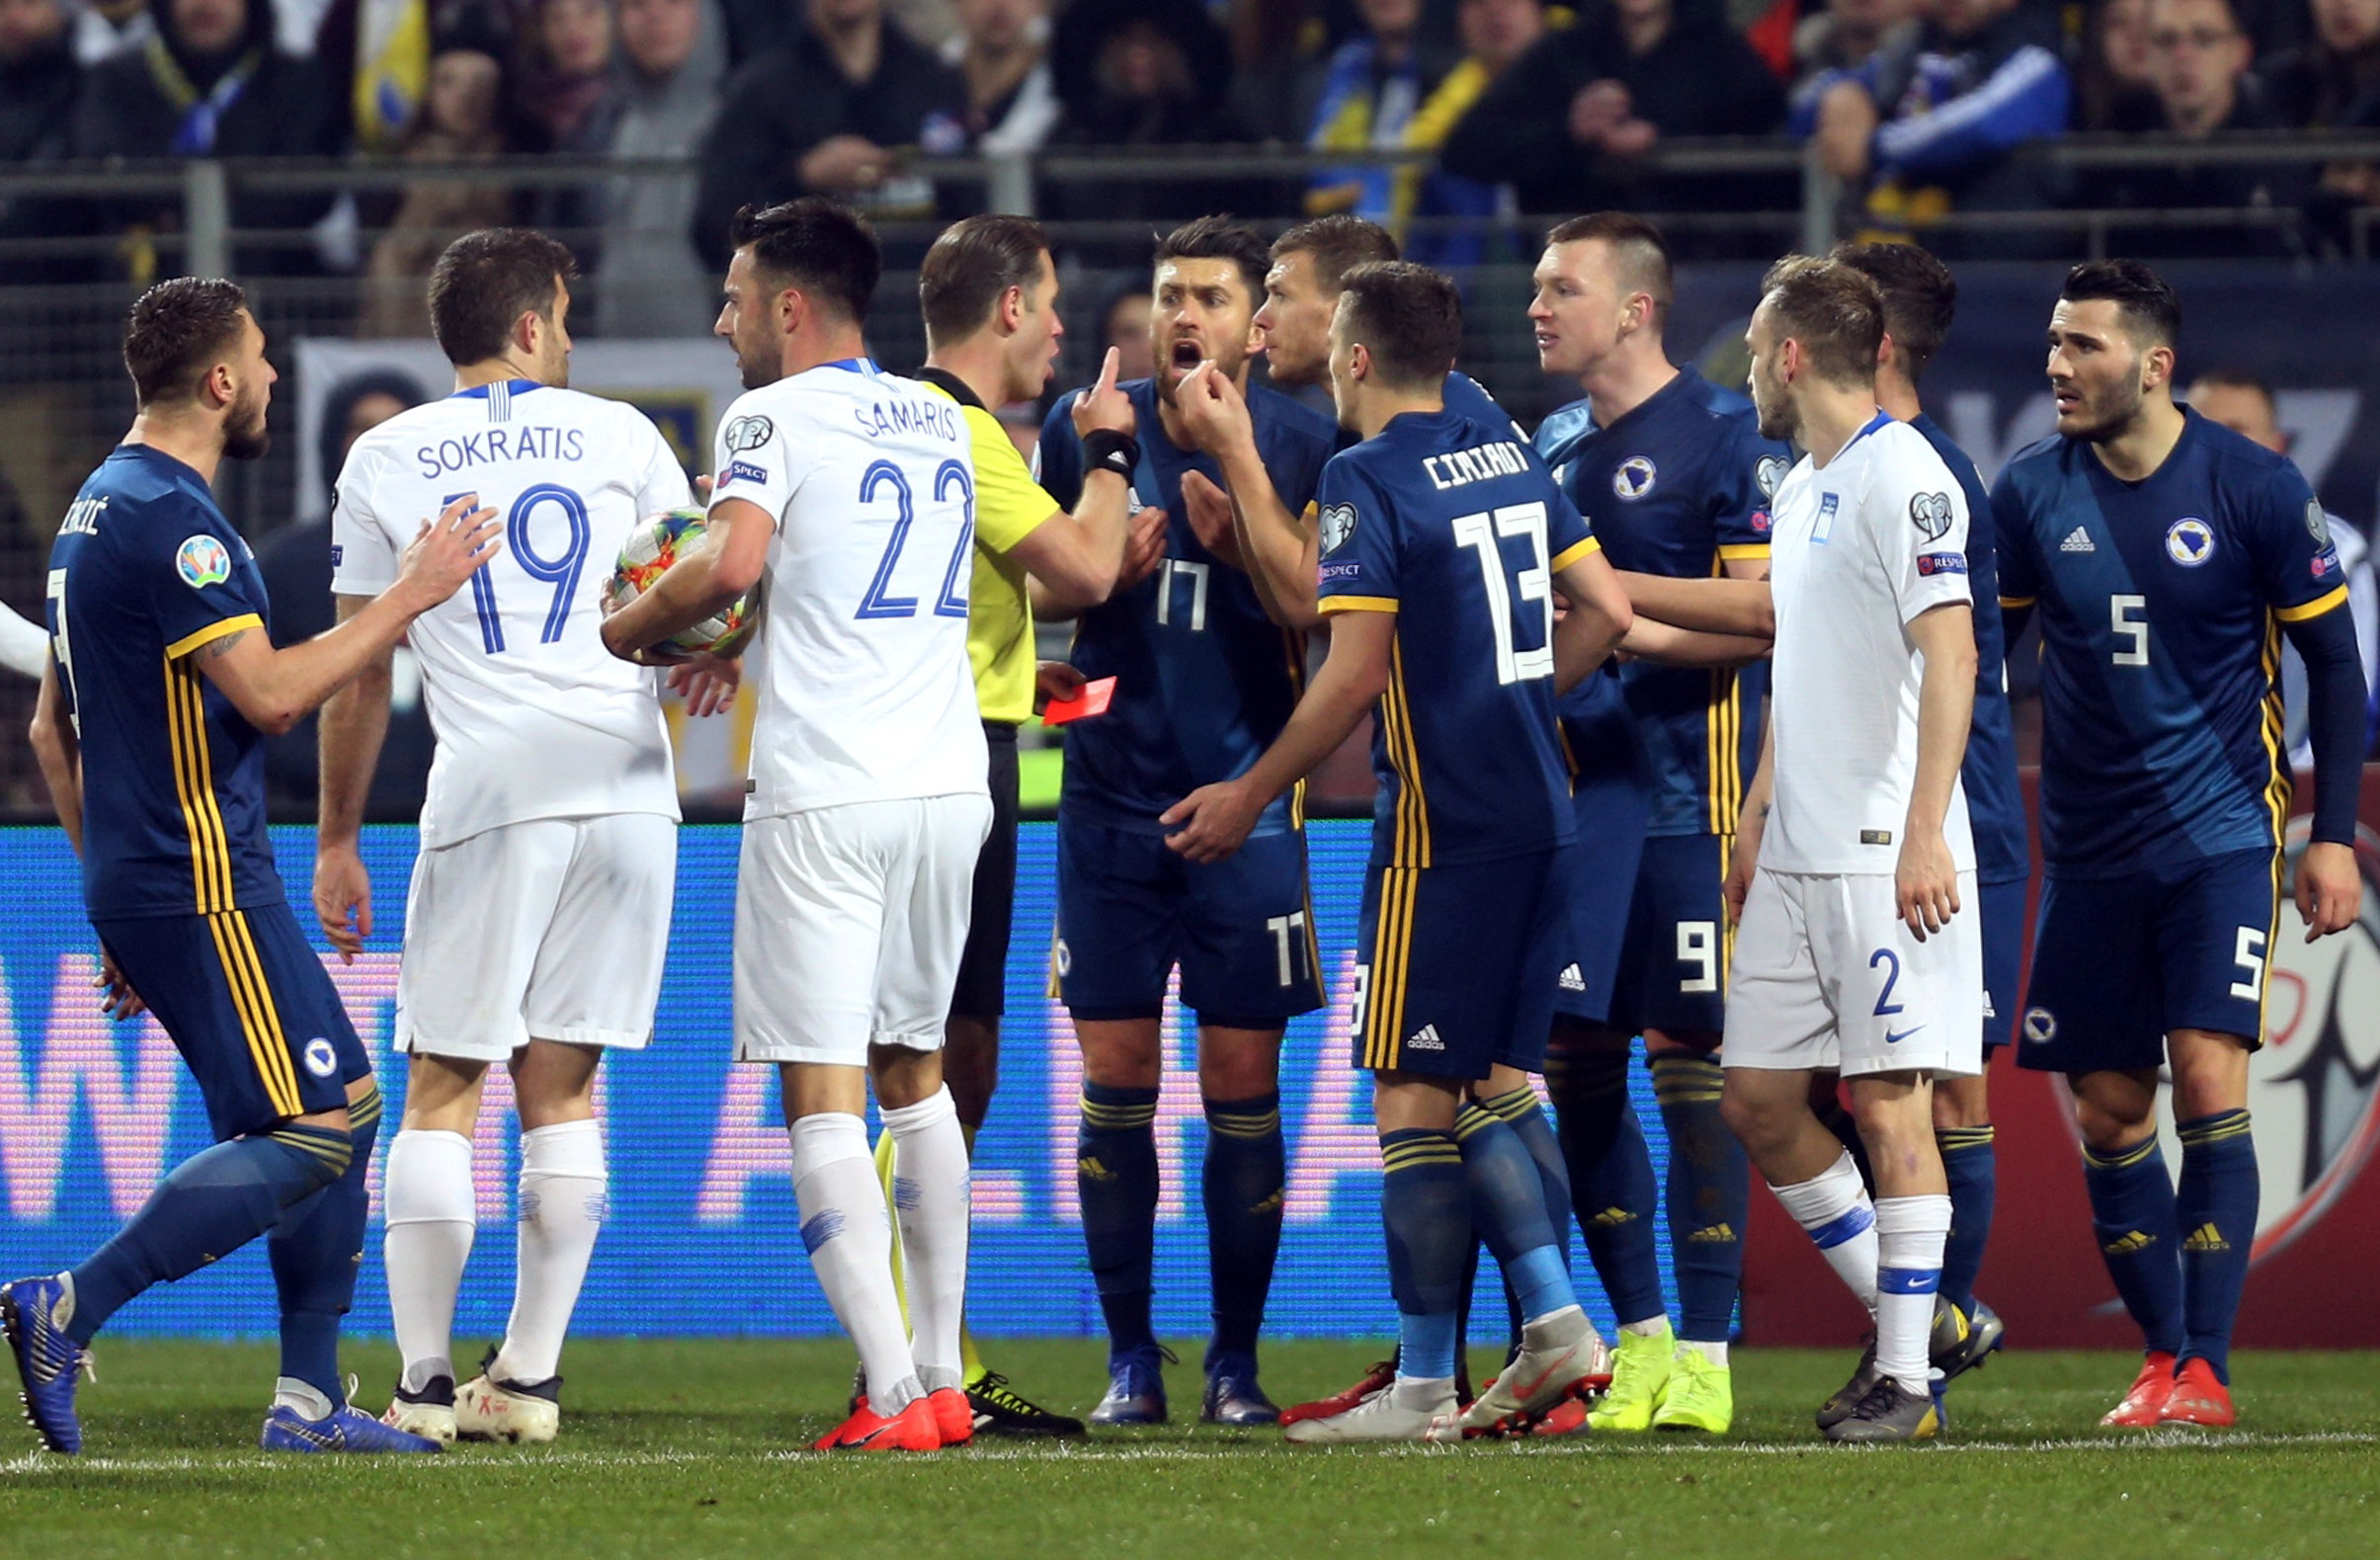 Soccer Football - Euro 2020 Qualifier - Group J - Bosnia and Herzegovina v Greece - Bilino Polje Stadium, Zenica, Bosnia and Herzegovina - March 26, 2019  Bosnia and Herzegovina players appeal to the referee as Bosnia and Herzegovina's Edin Dzeko is sent off  REUTERS/Dado Ruvic